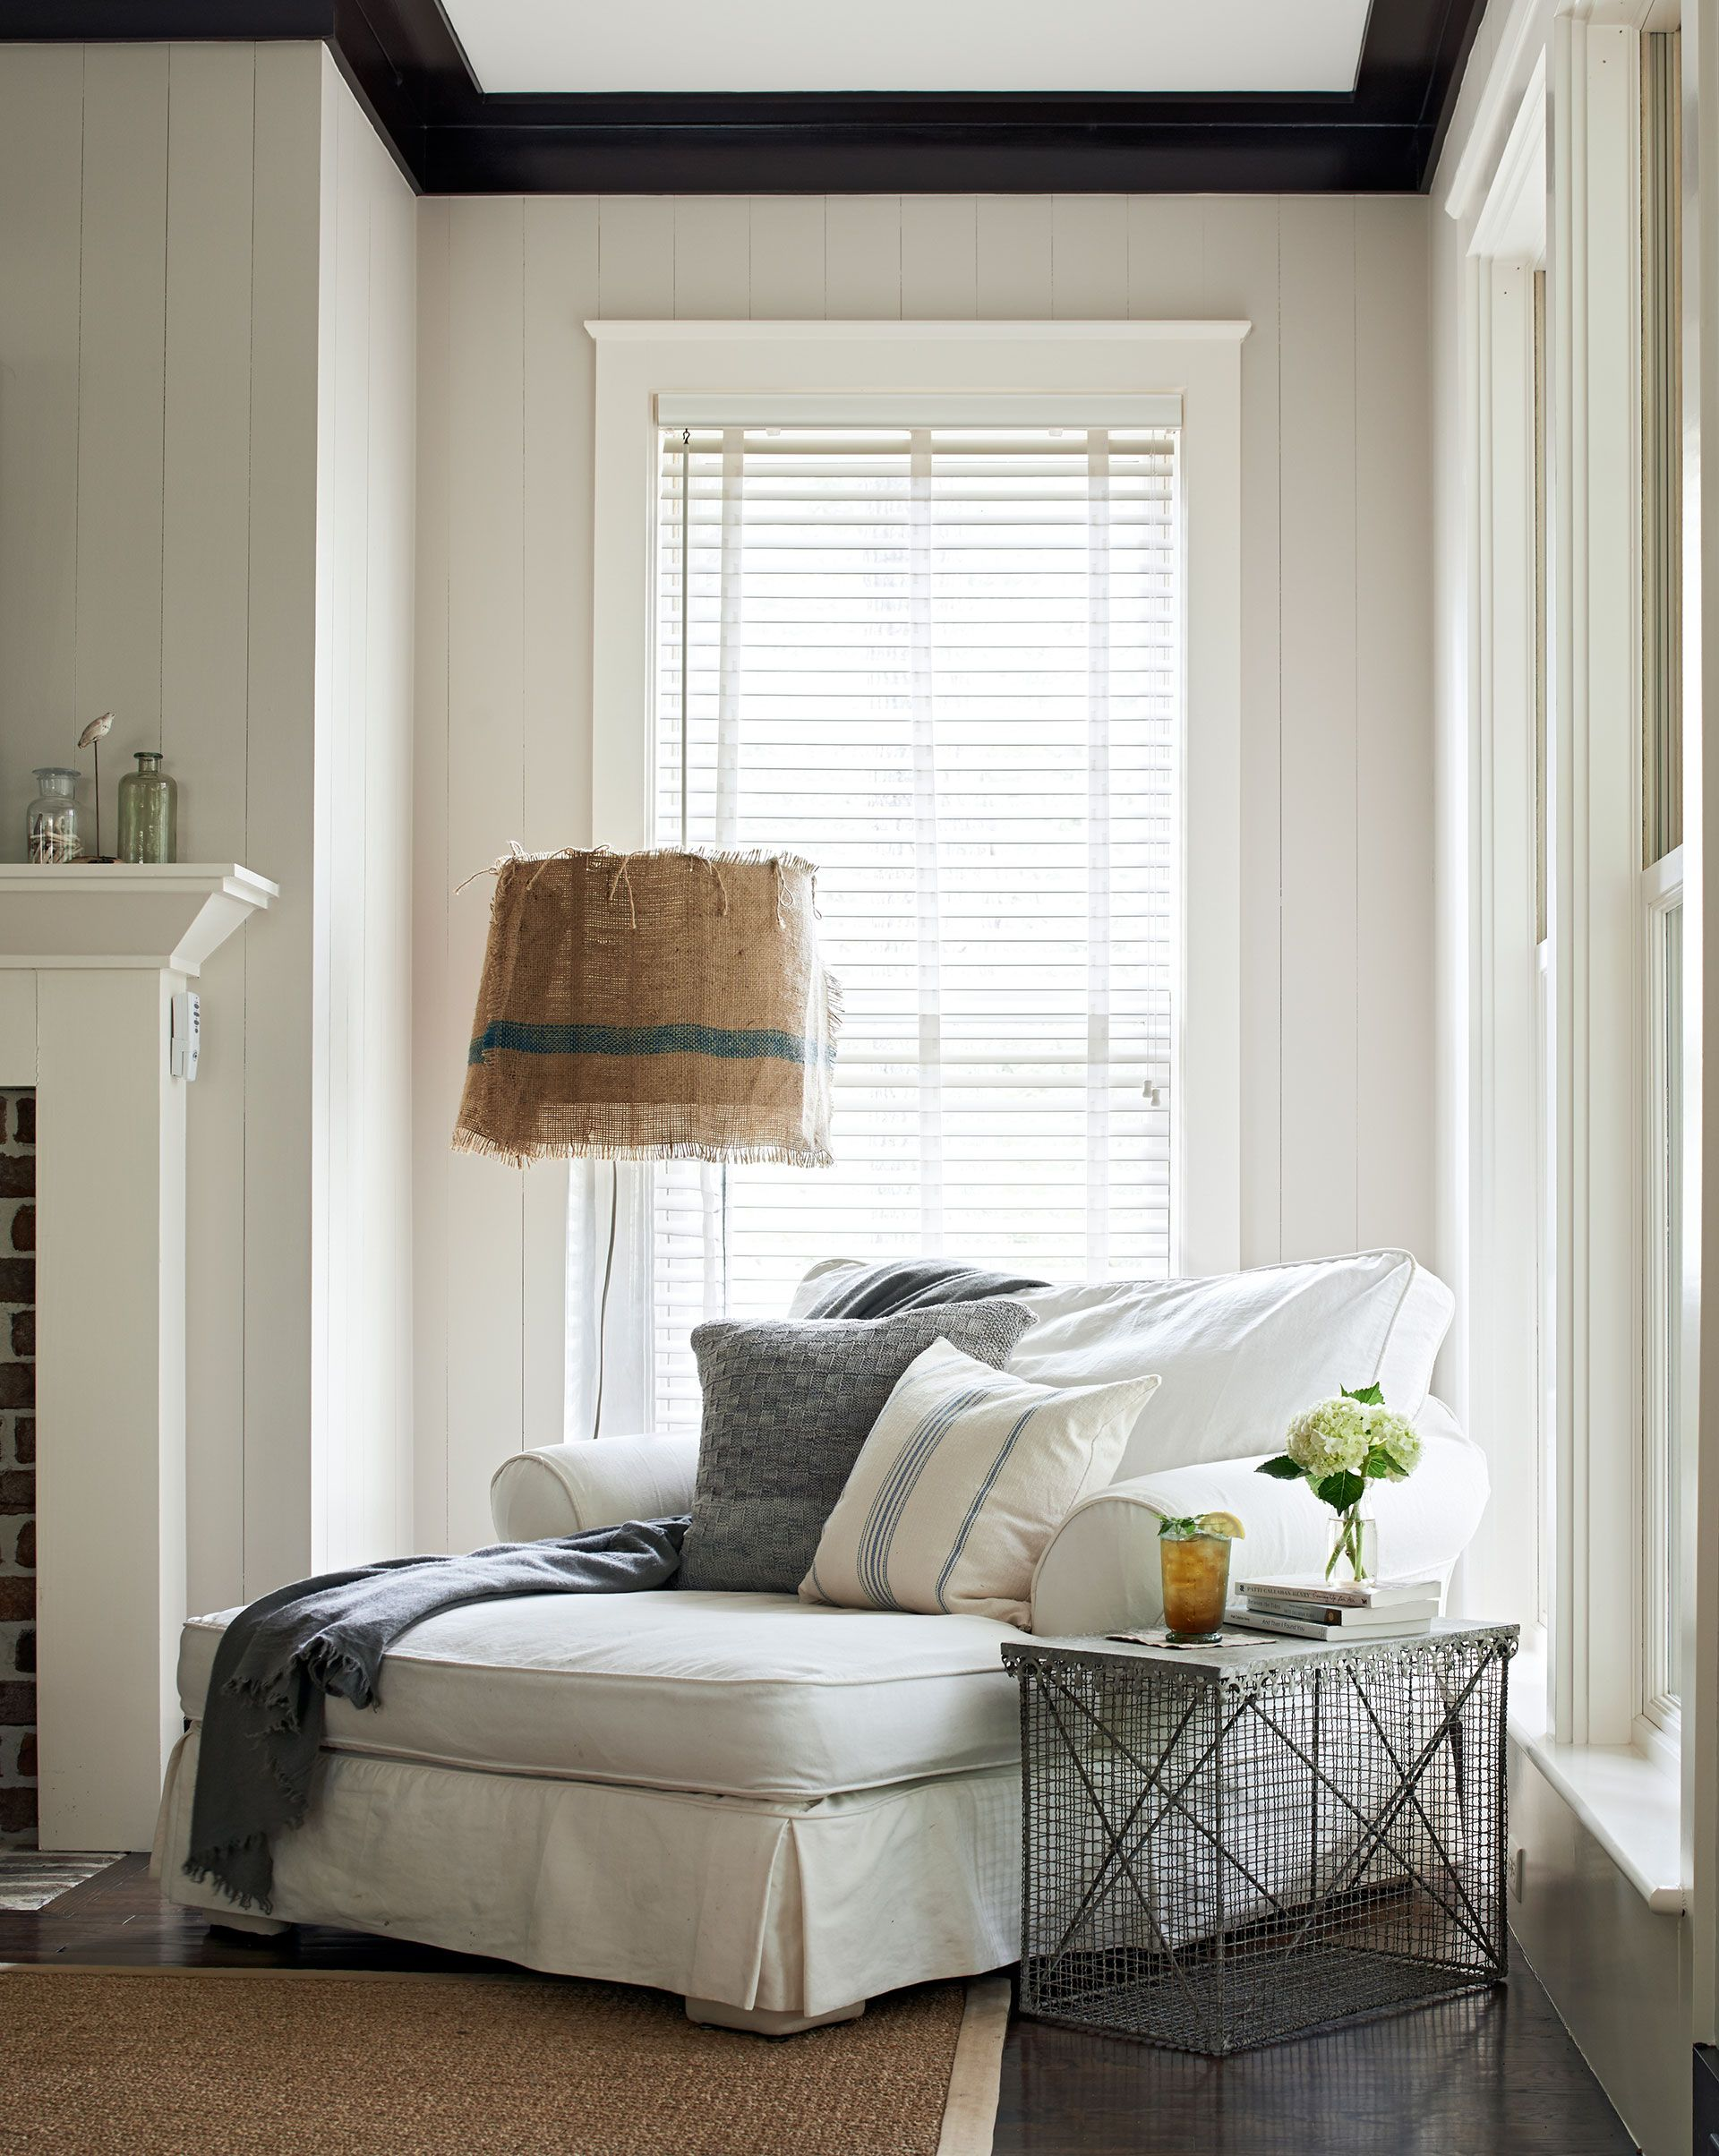 & Reading Nooks - Cozy Decorating Ideas